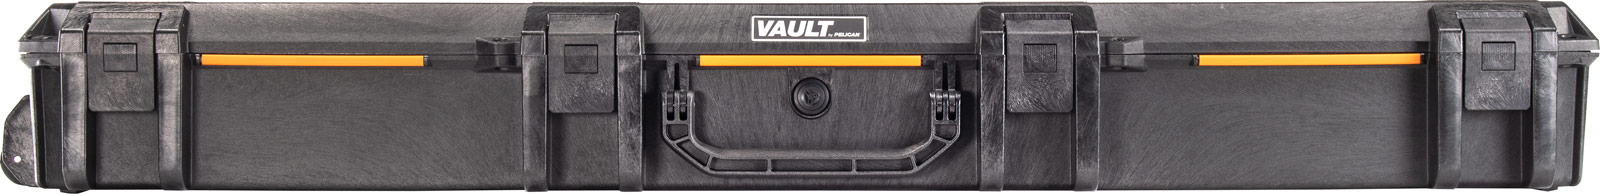 pelican vault v800 long hard case